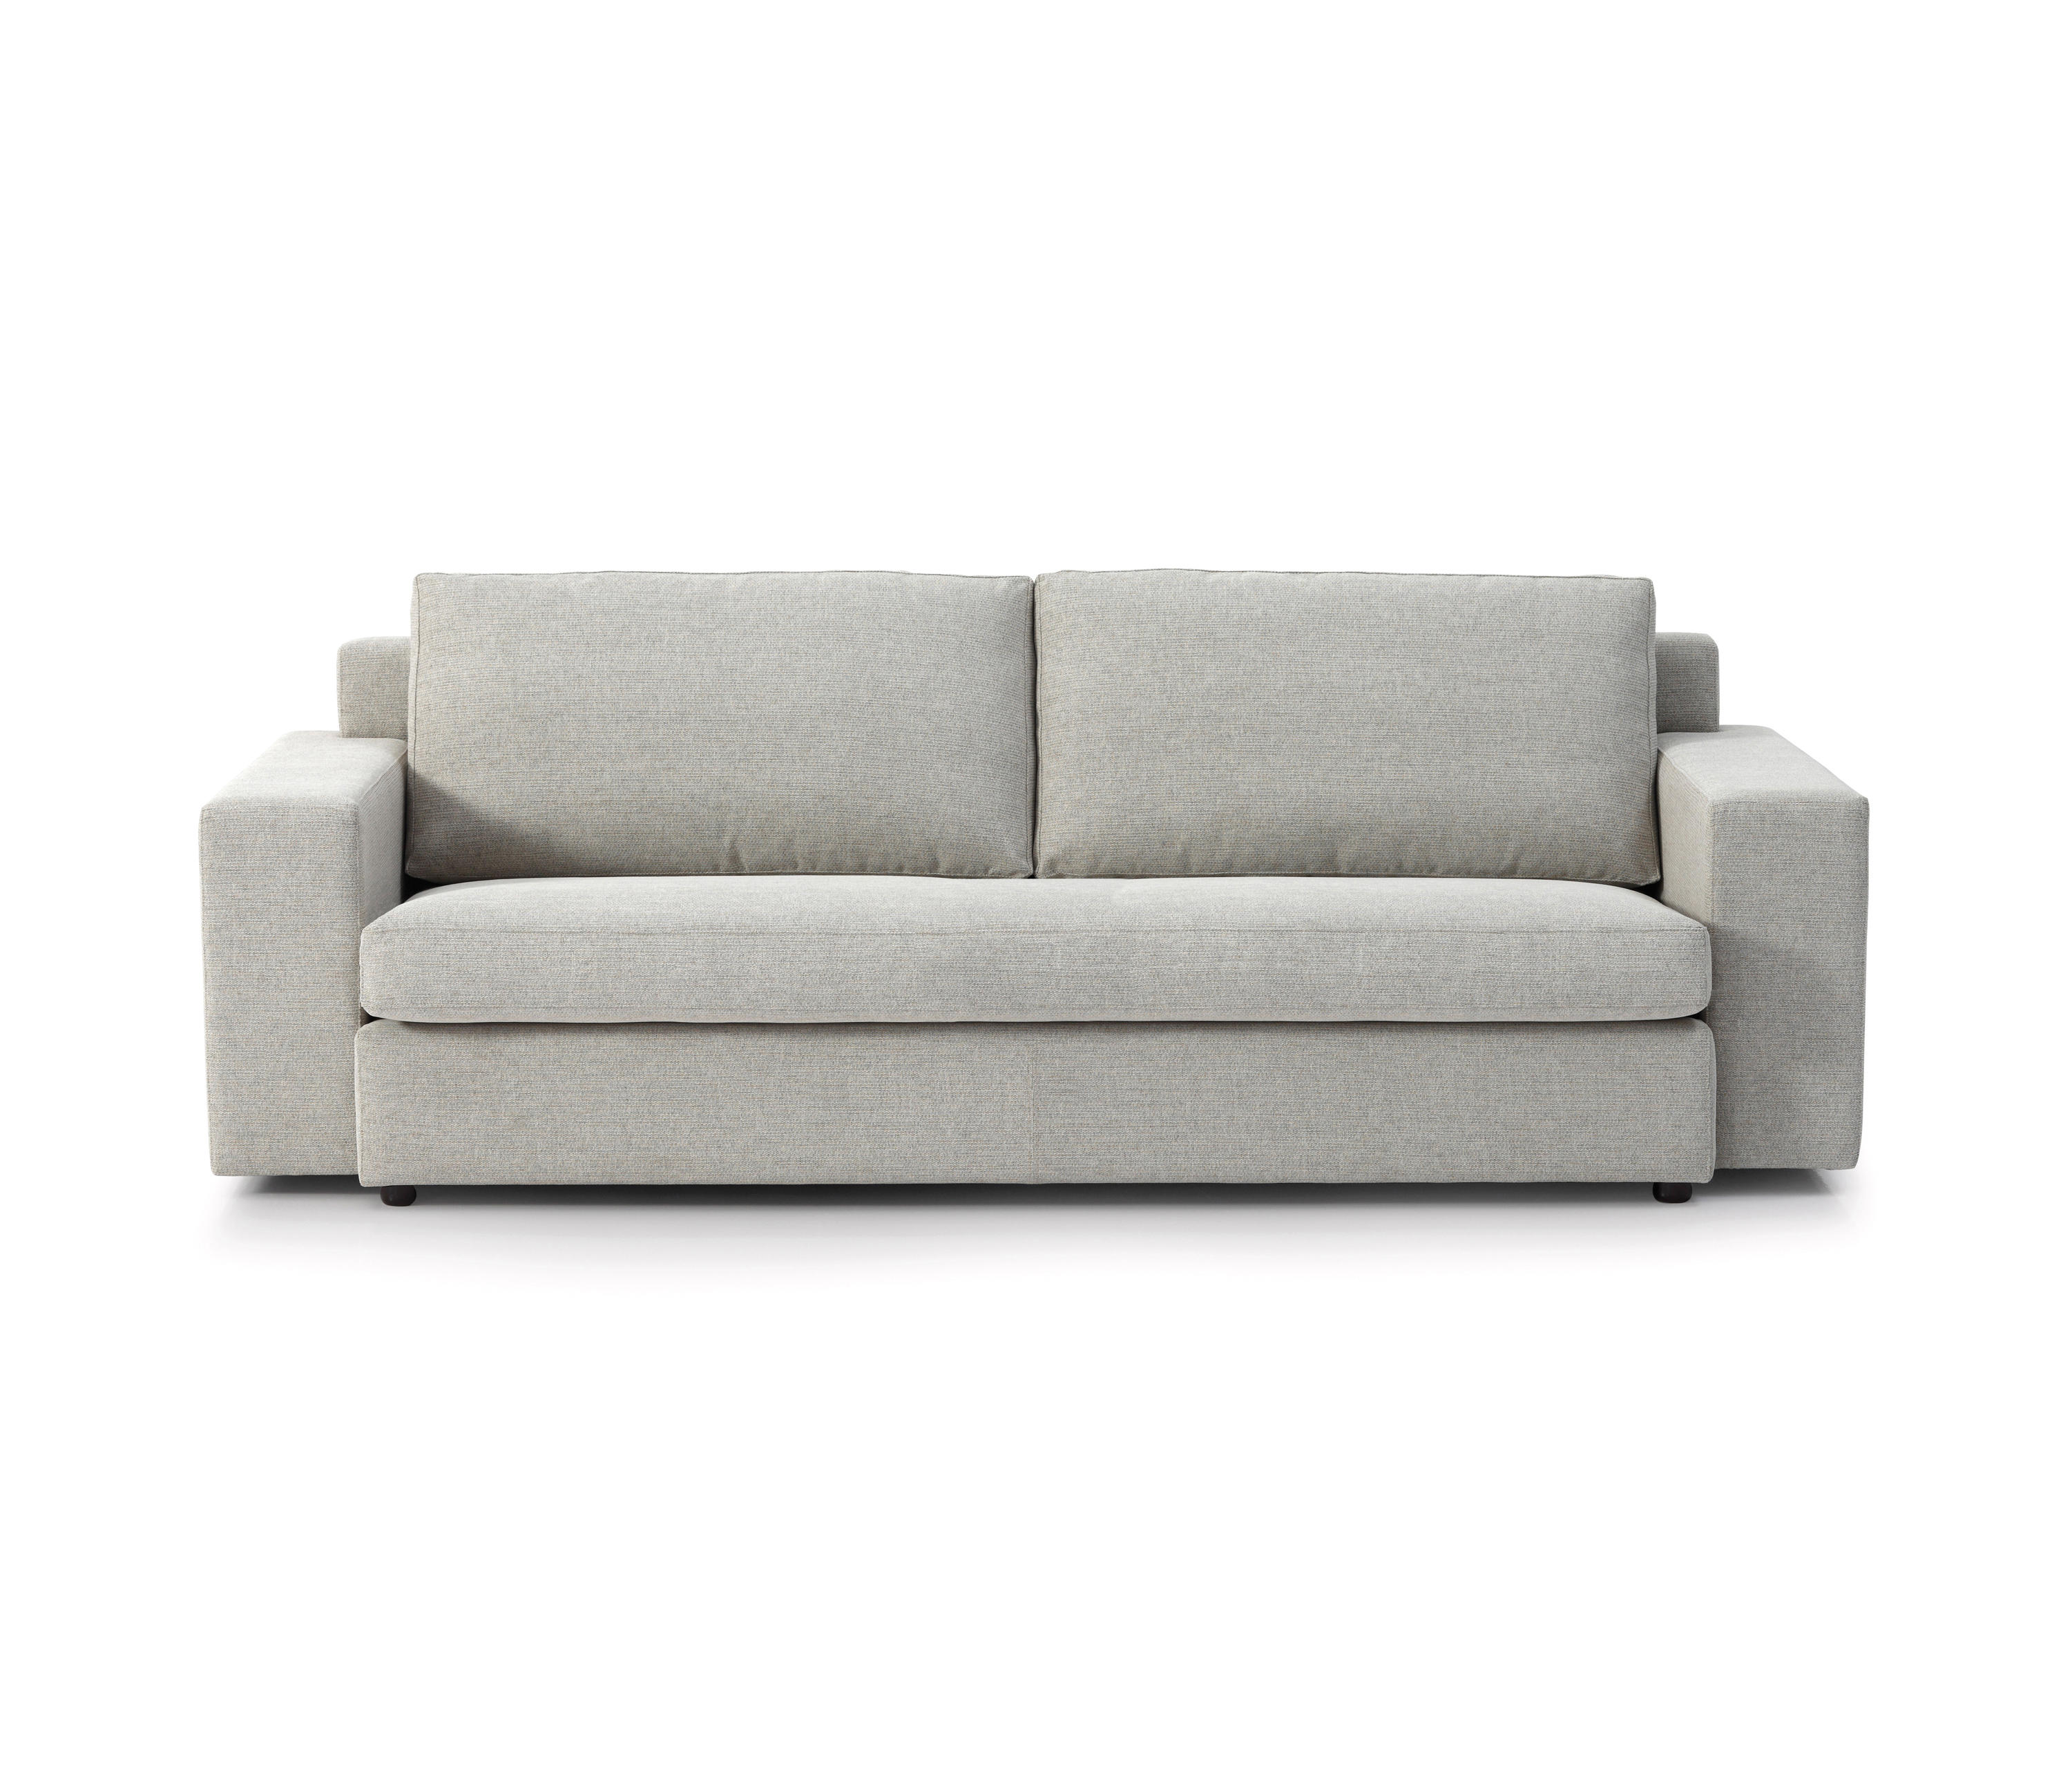 Doblo sofa beds from sancal architonic - Sofas sancal ...